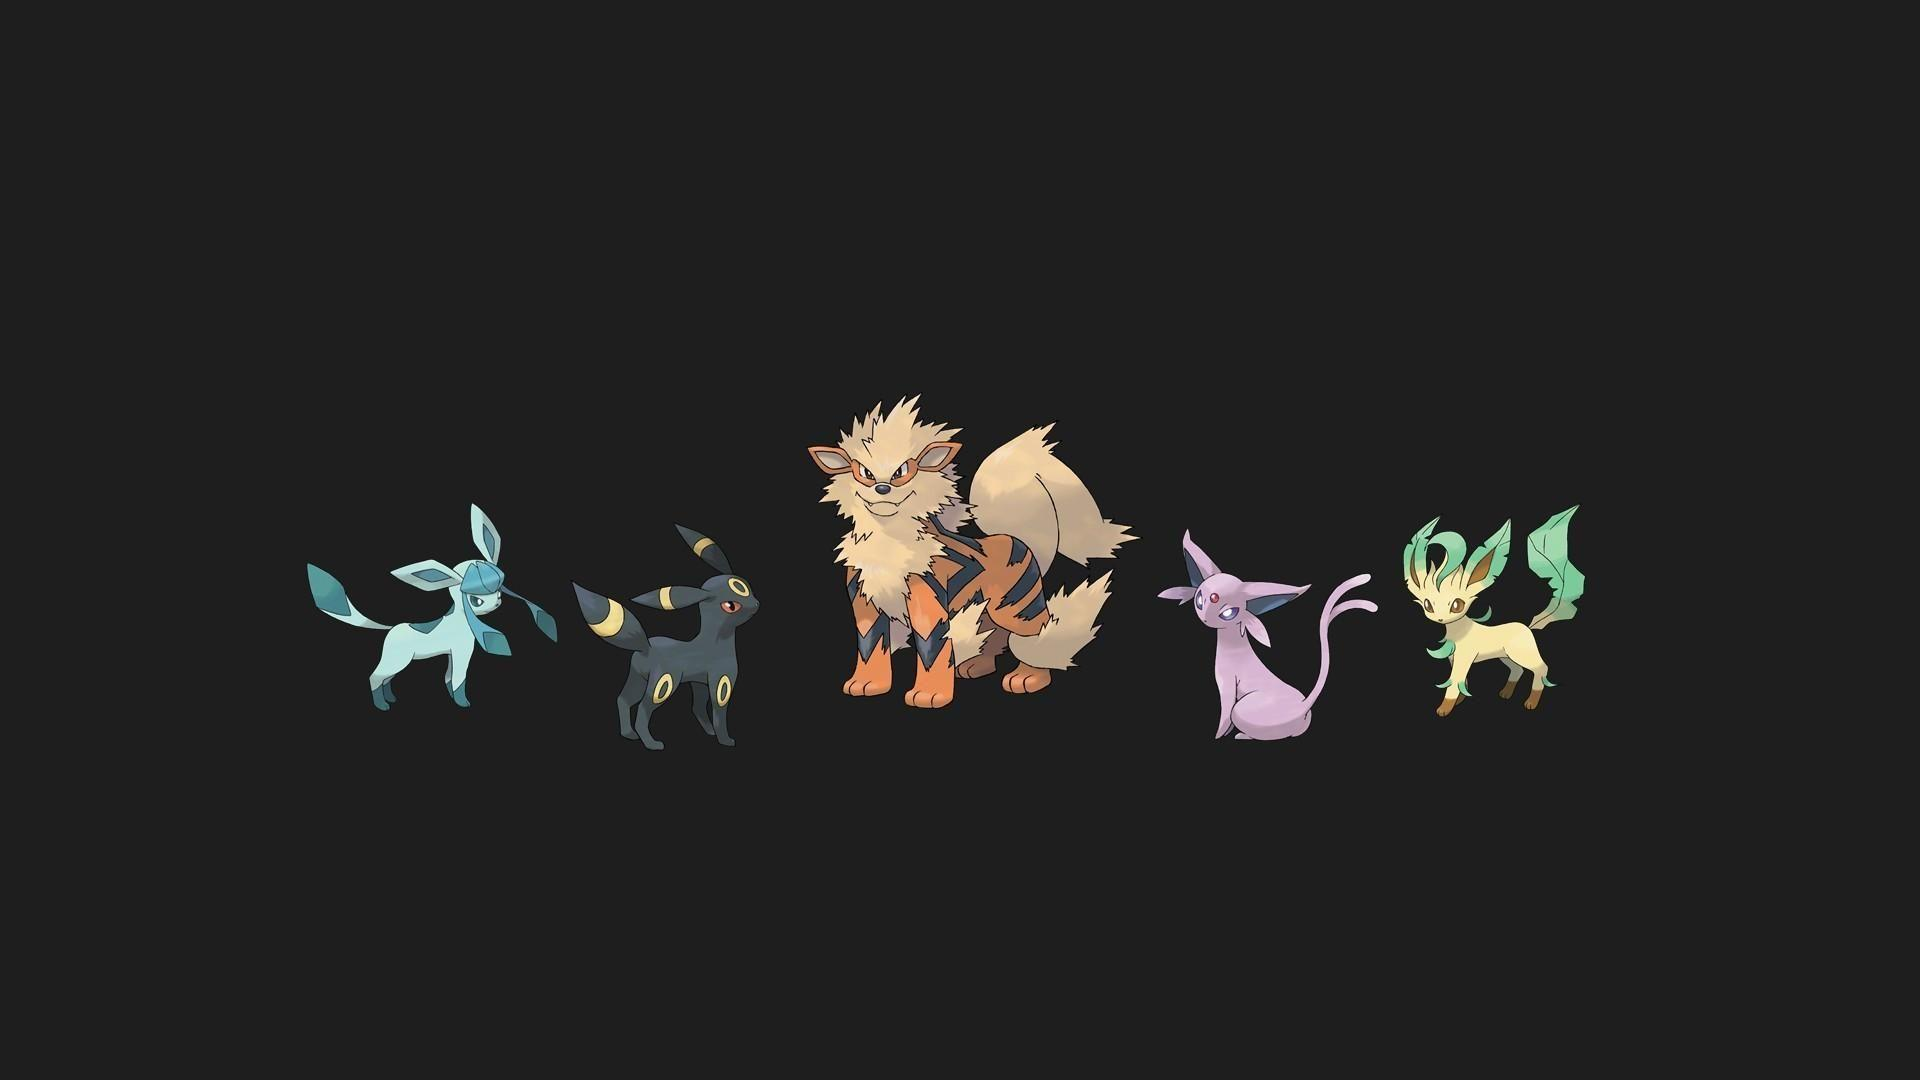 Pokemon espeon jolteon arcanine leafeon glaceon wallpapers